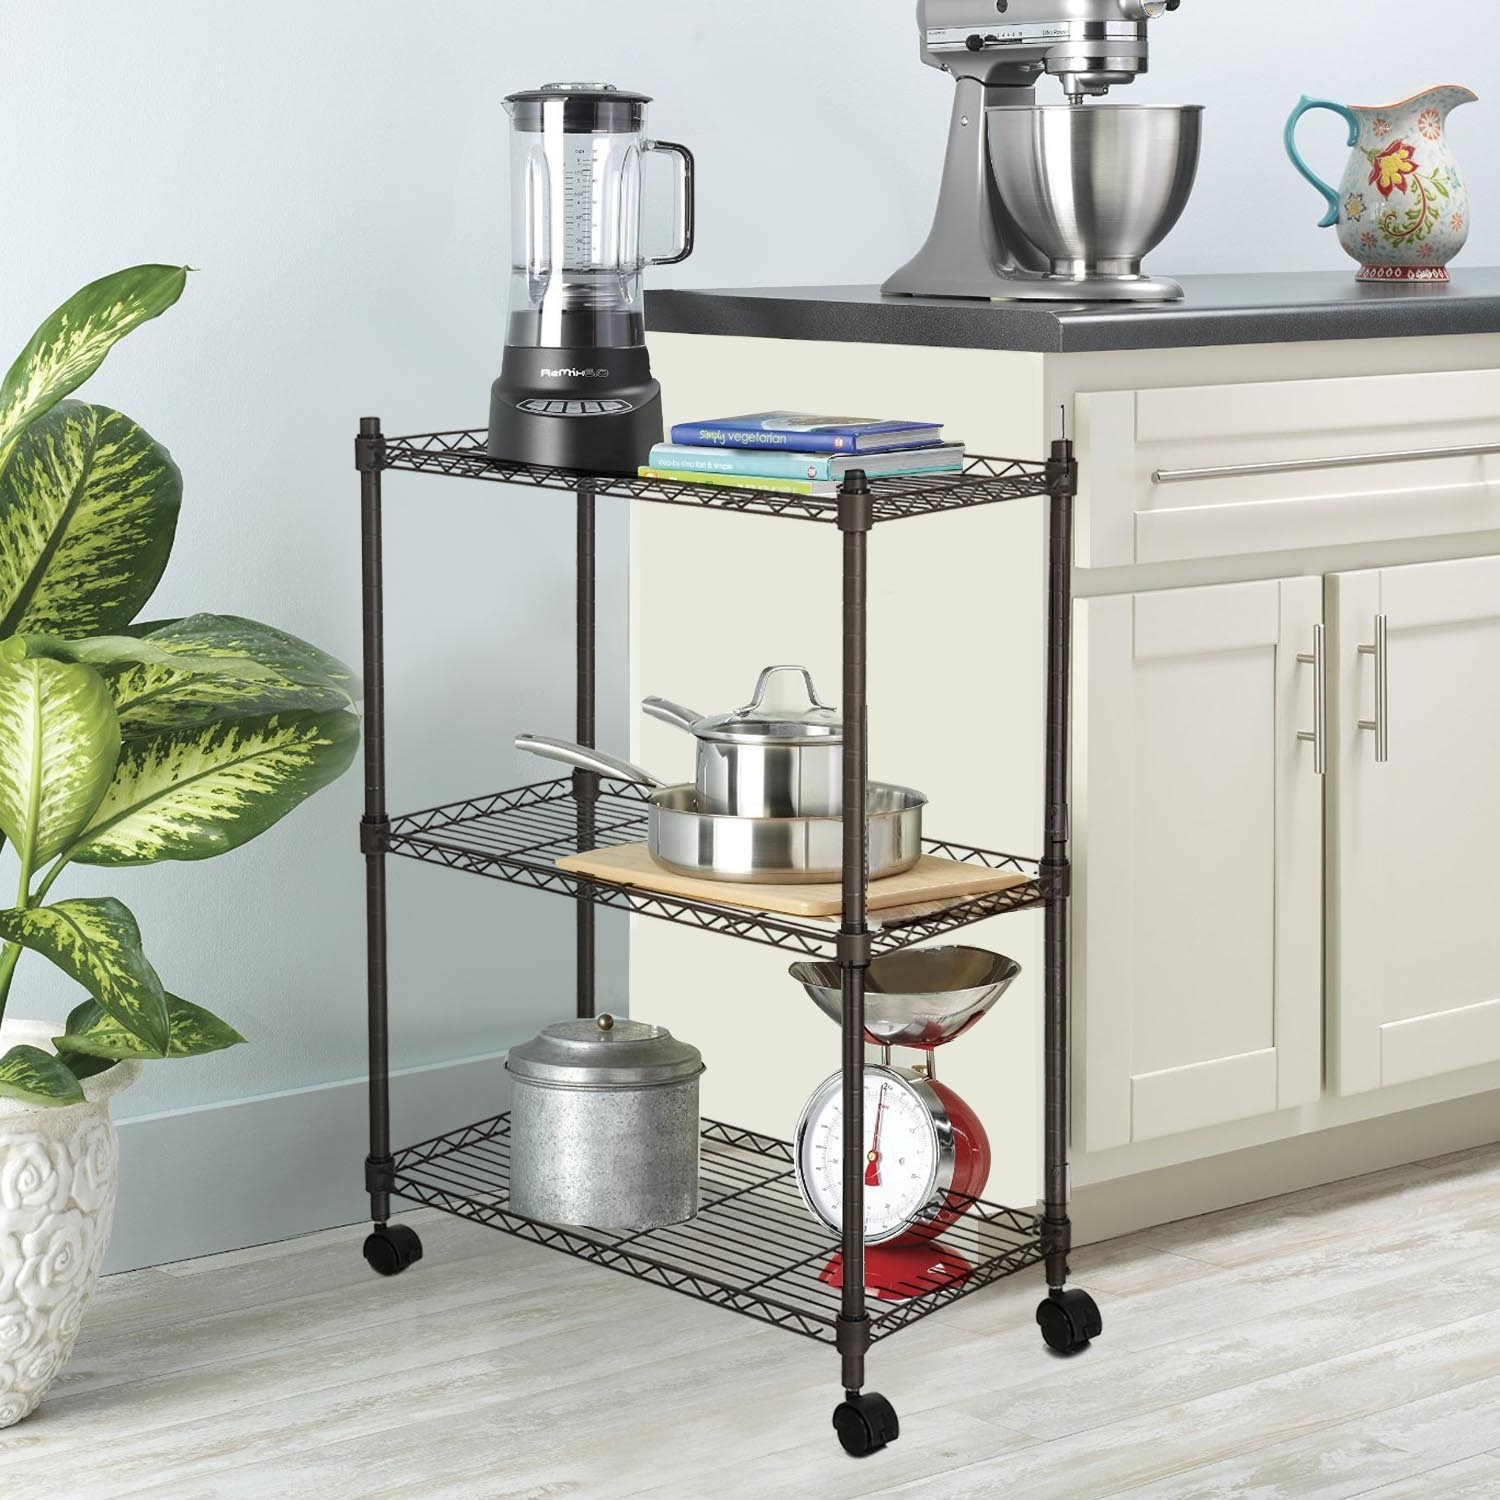 Hot Sale! Modern Wire Shelf Shelving Kitchen Rack Heavy Duty Microwave Oven Stand Storage Cart with Wheels 3 Tier VAF